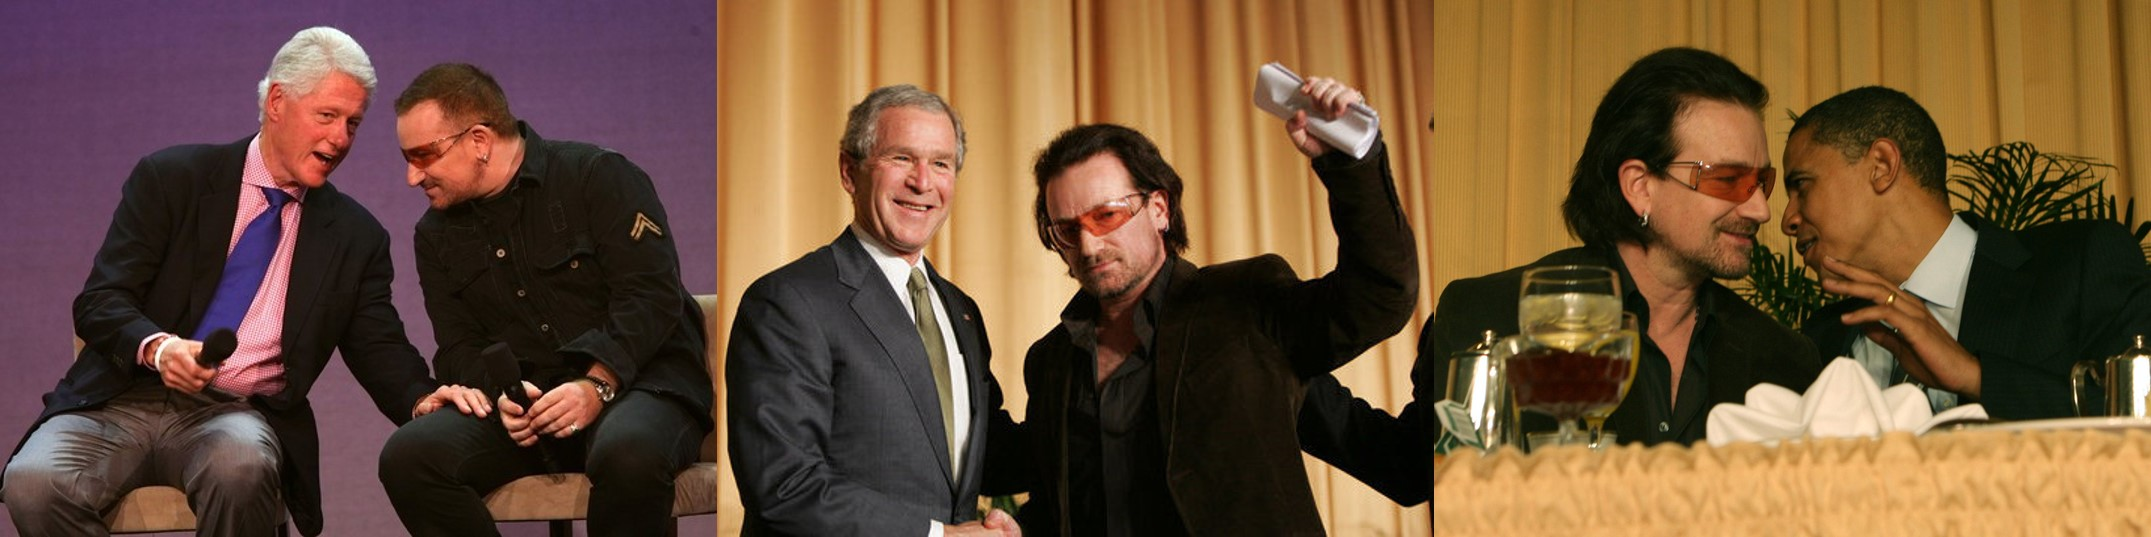 rp_Bono-and-presidents.jpg